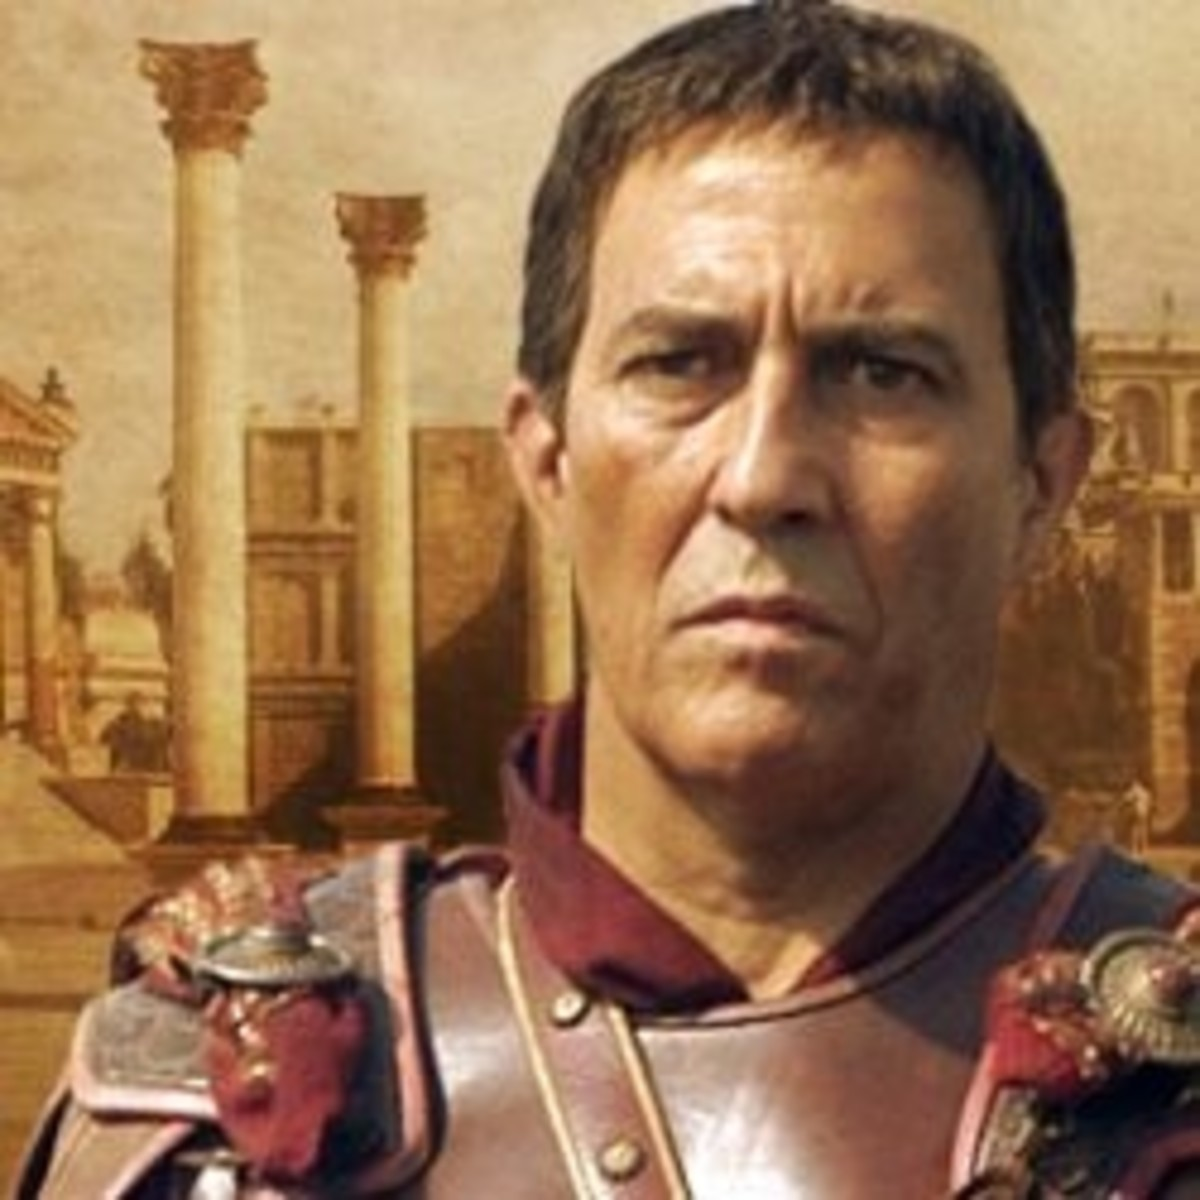 The Ides of March - with Recipes